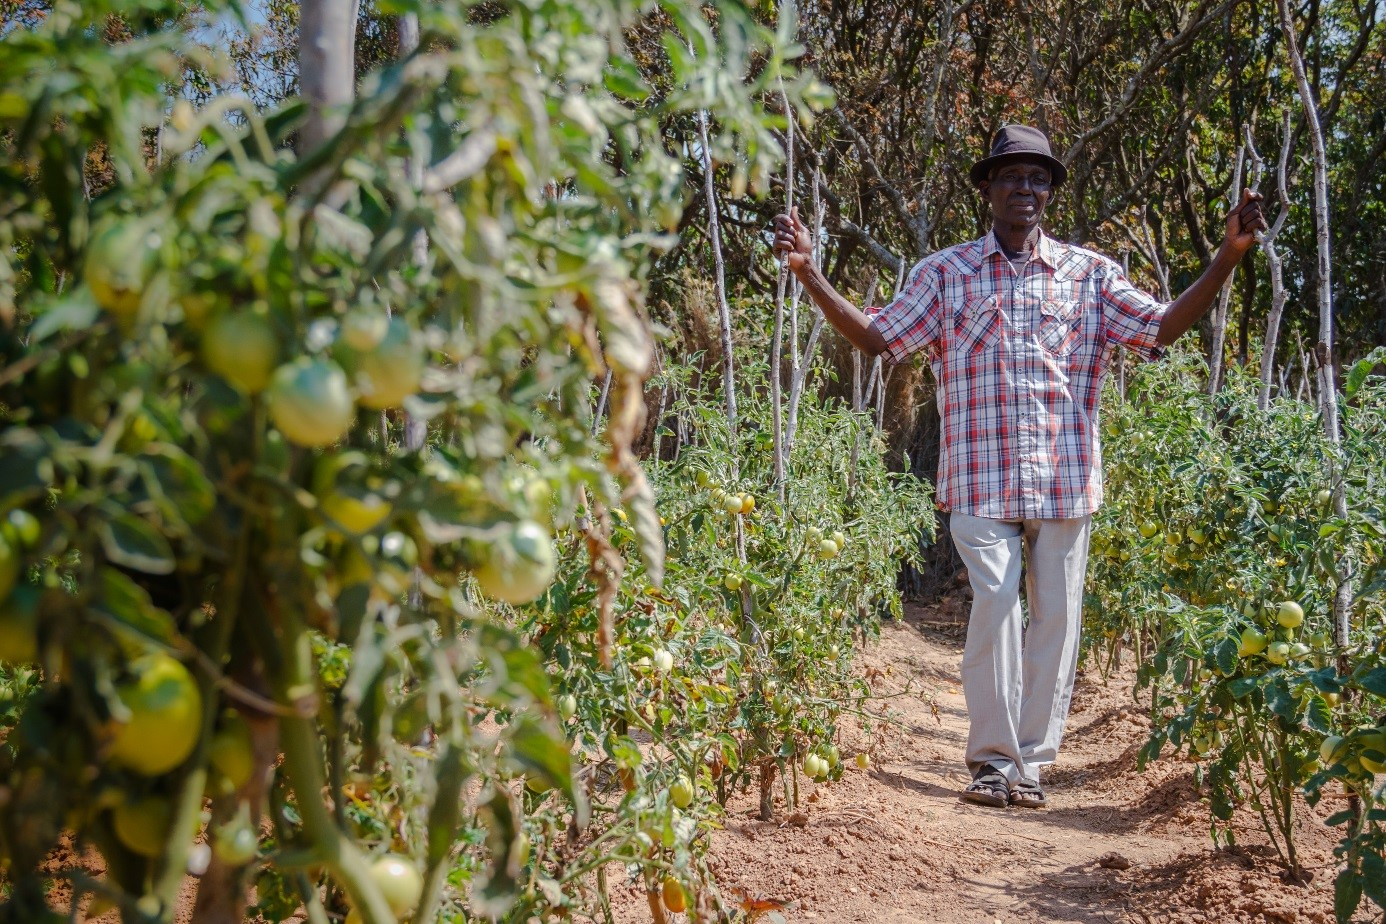 Christian Aid Scotland empowering farmers in Zambia through Making Agriculture a Business